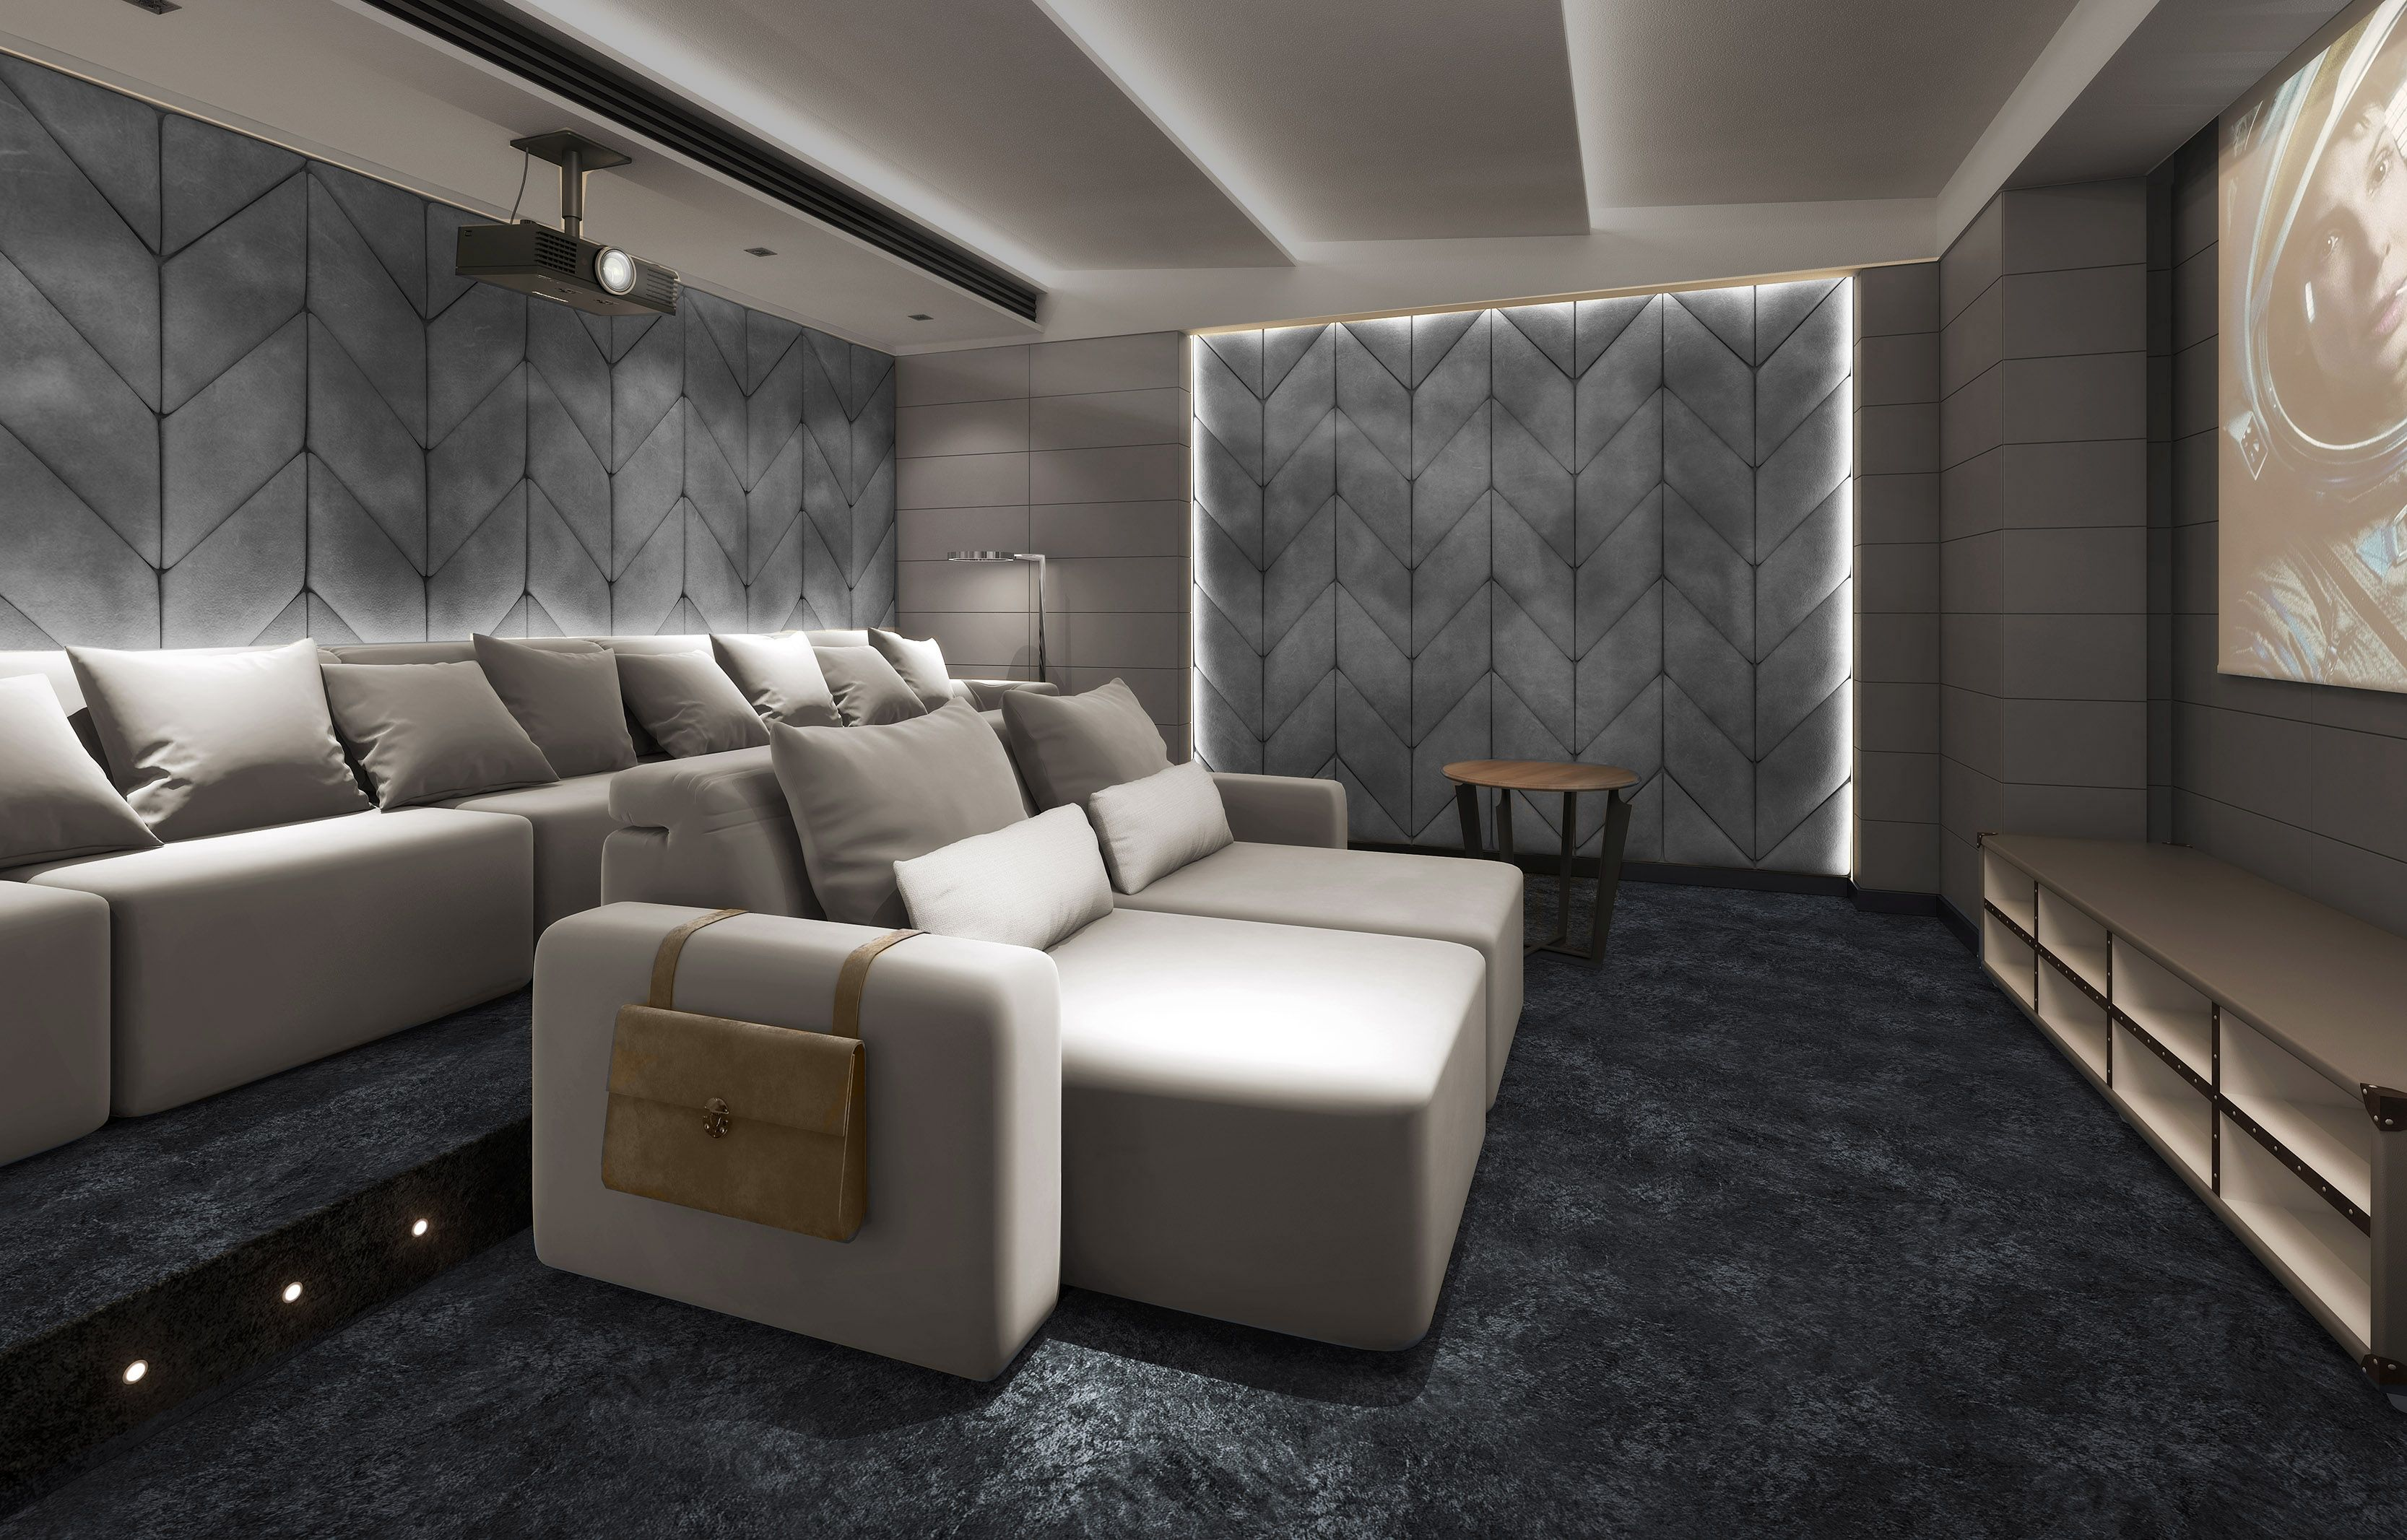 Luxury Cinema Room With Seating That Is Like No Other These Seats Are Recliner Electric Or Manual Head Rests And Feet